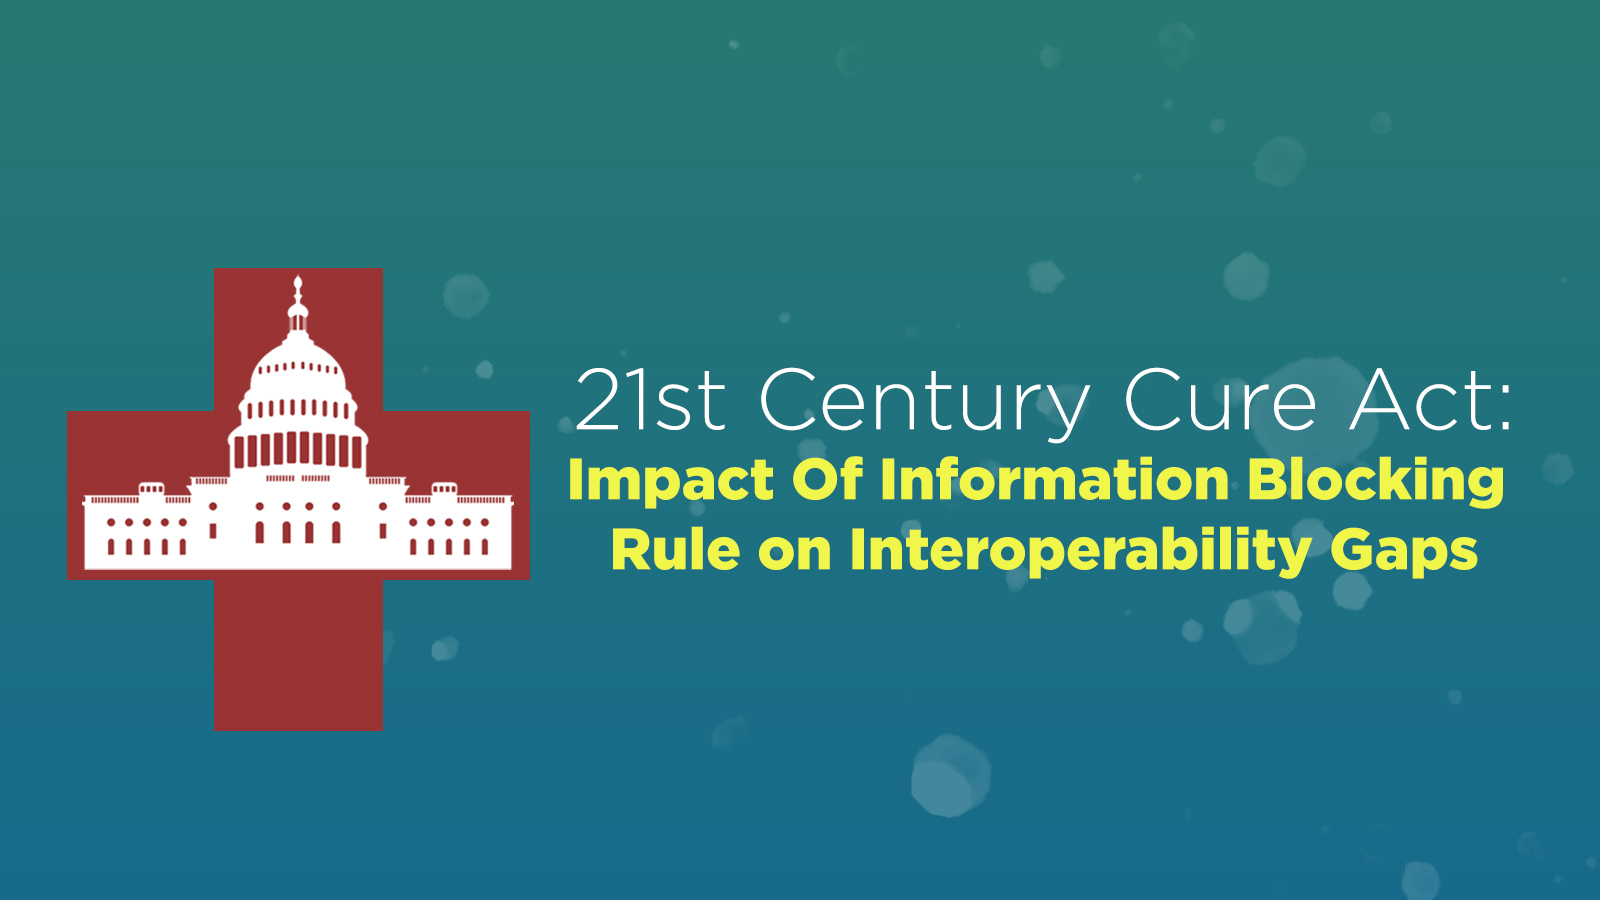 iPatientCare Blog - 21st Century Cure Act Impact Of Information Blocking Rule on Interoperability Gaps